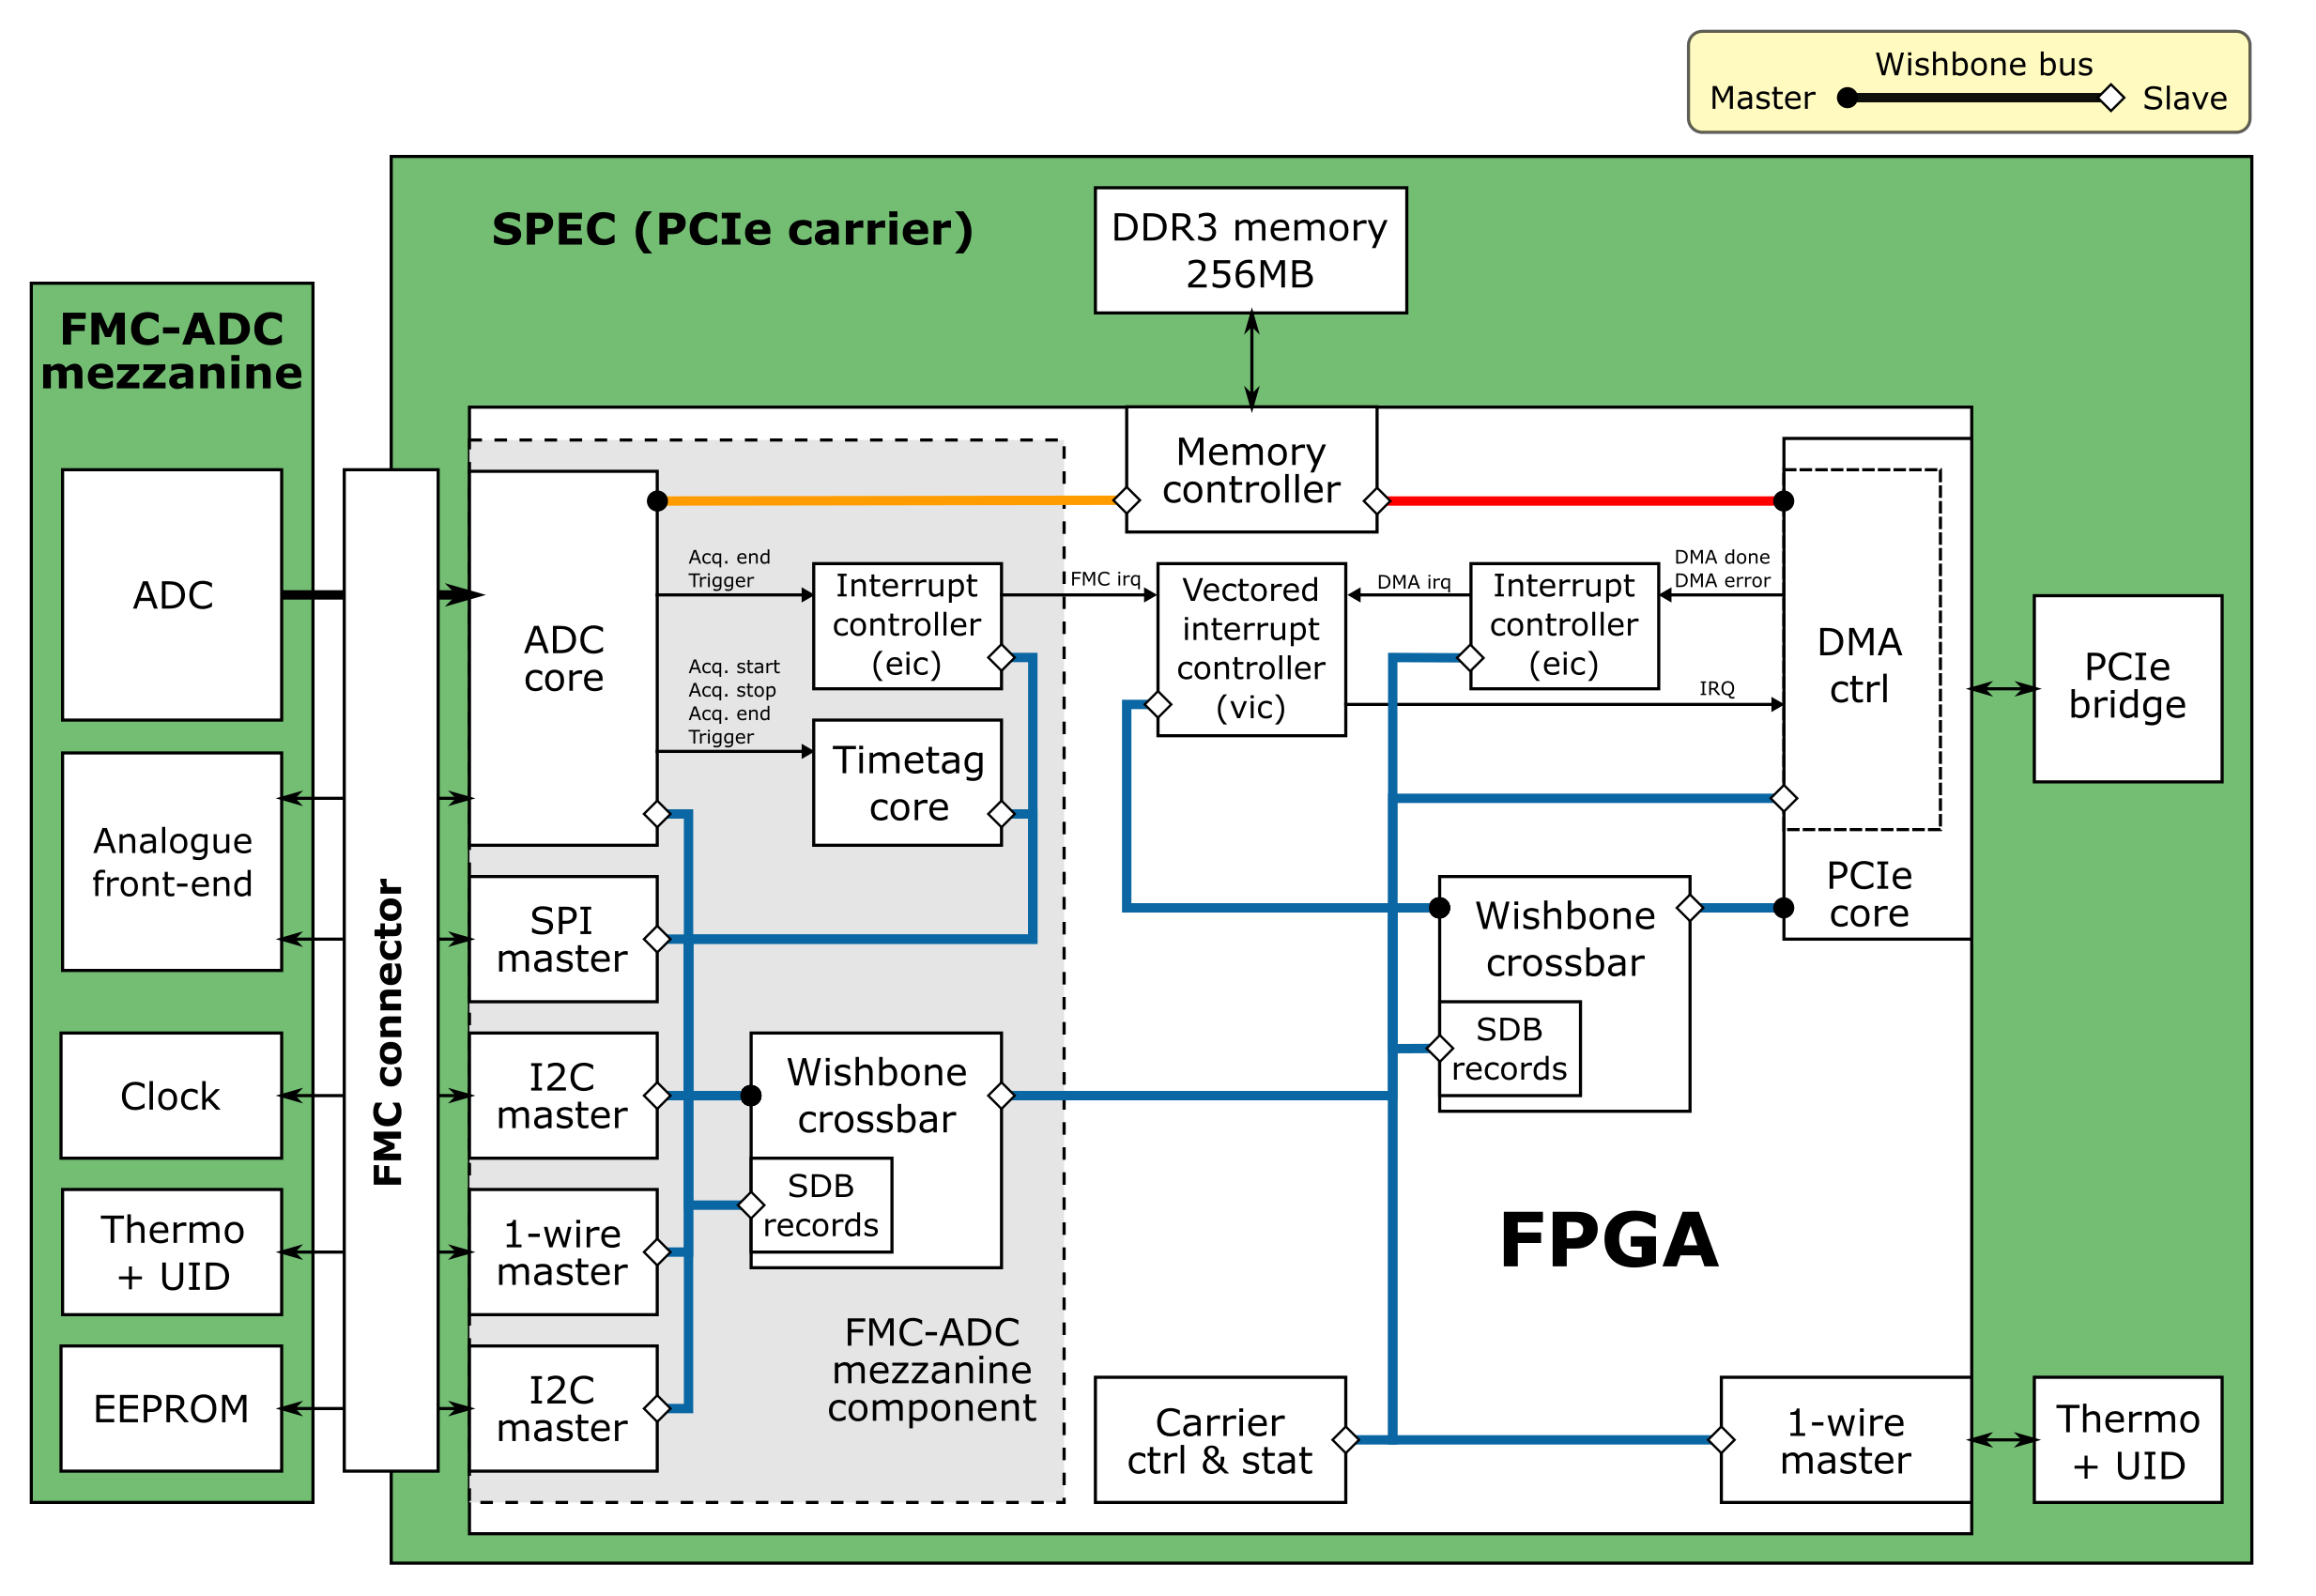 presentations/WR_for_DAQ_Dimitris_IN2P32016/graphics/fmc-adc-spec.png